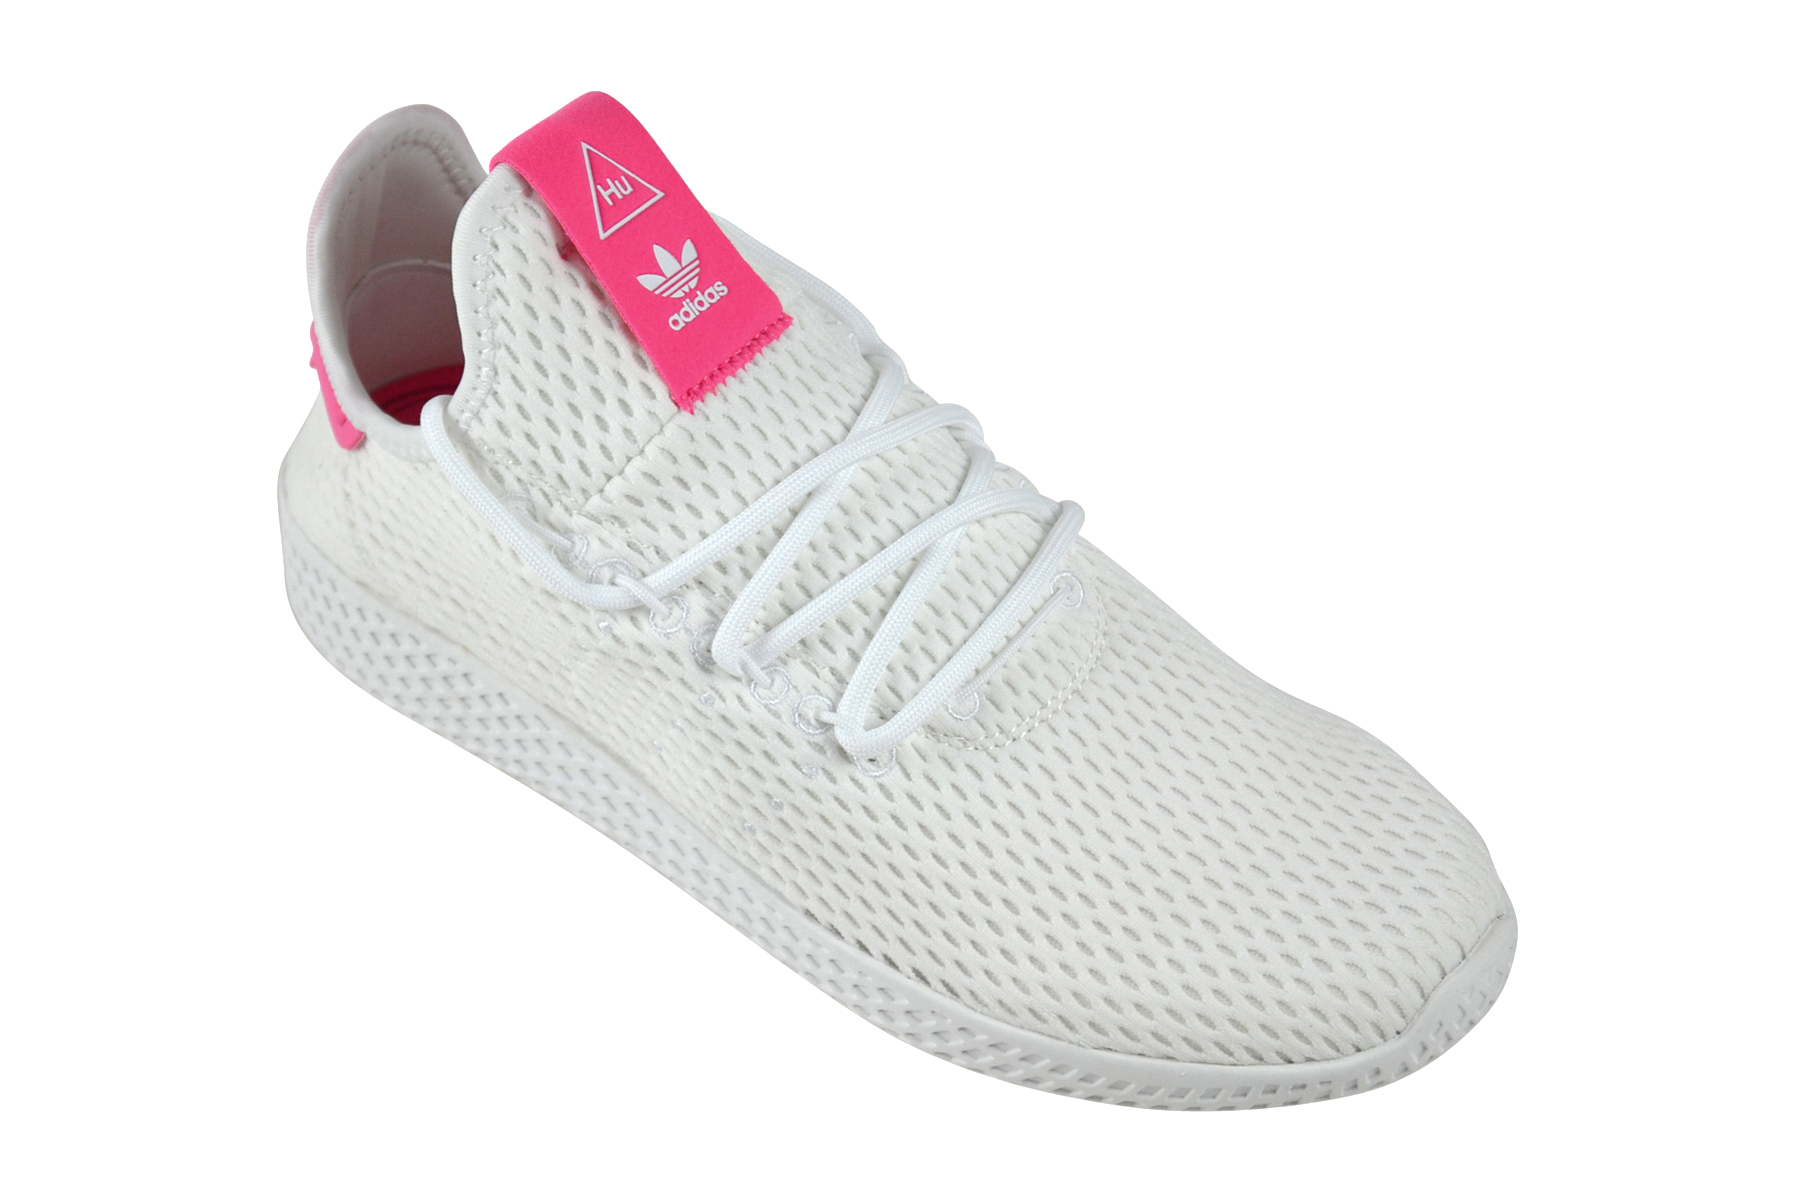 Détails sur Adidas Pharrell Williams Tennis Pw Hu Blanc Rose Chaussures Baskets Blanc BY8714